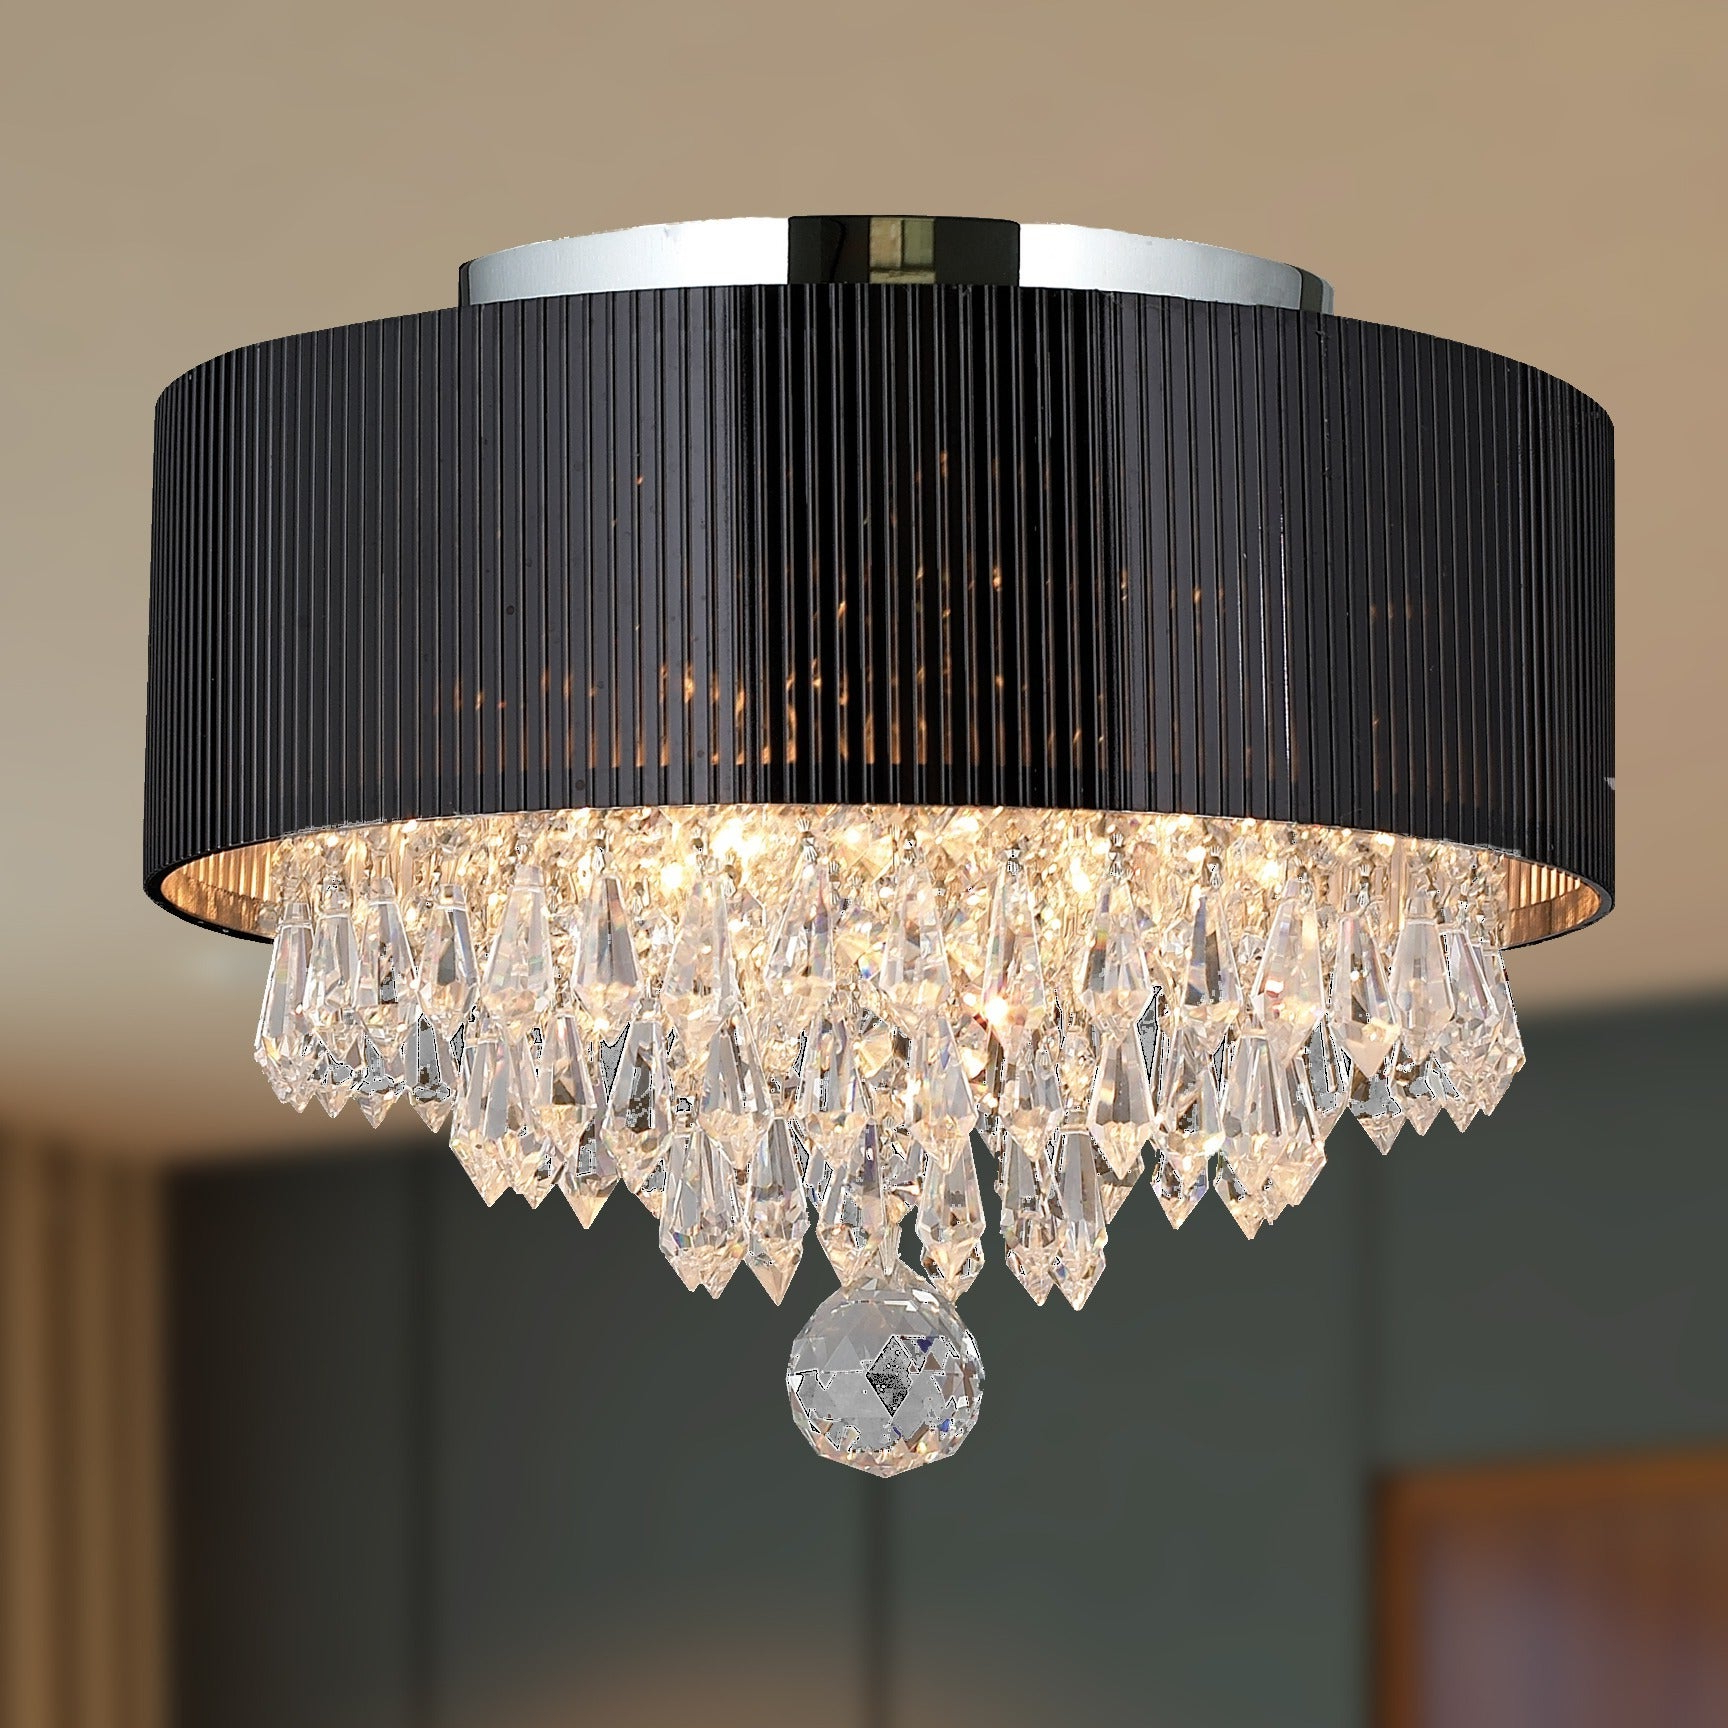 Modern Elegance 3 Light Chrome Finish And Full Lead Crystal With Black Drum Shade Small Flush Mount Ceiling Light Within Widely Used Clea 3 Light Crystal Chandeliers (View 17 of 20)